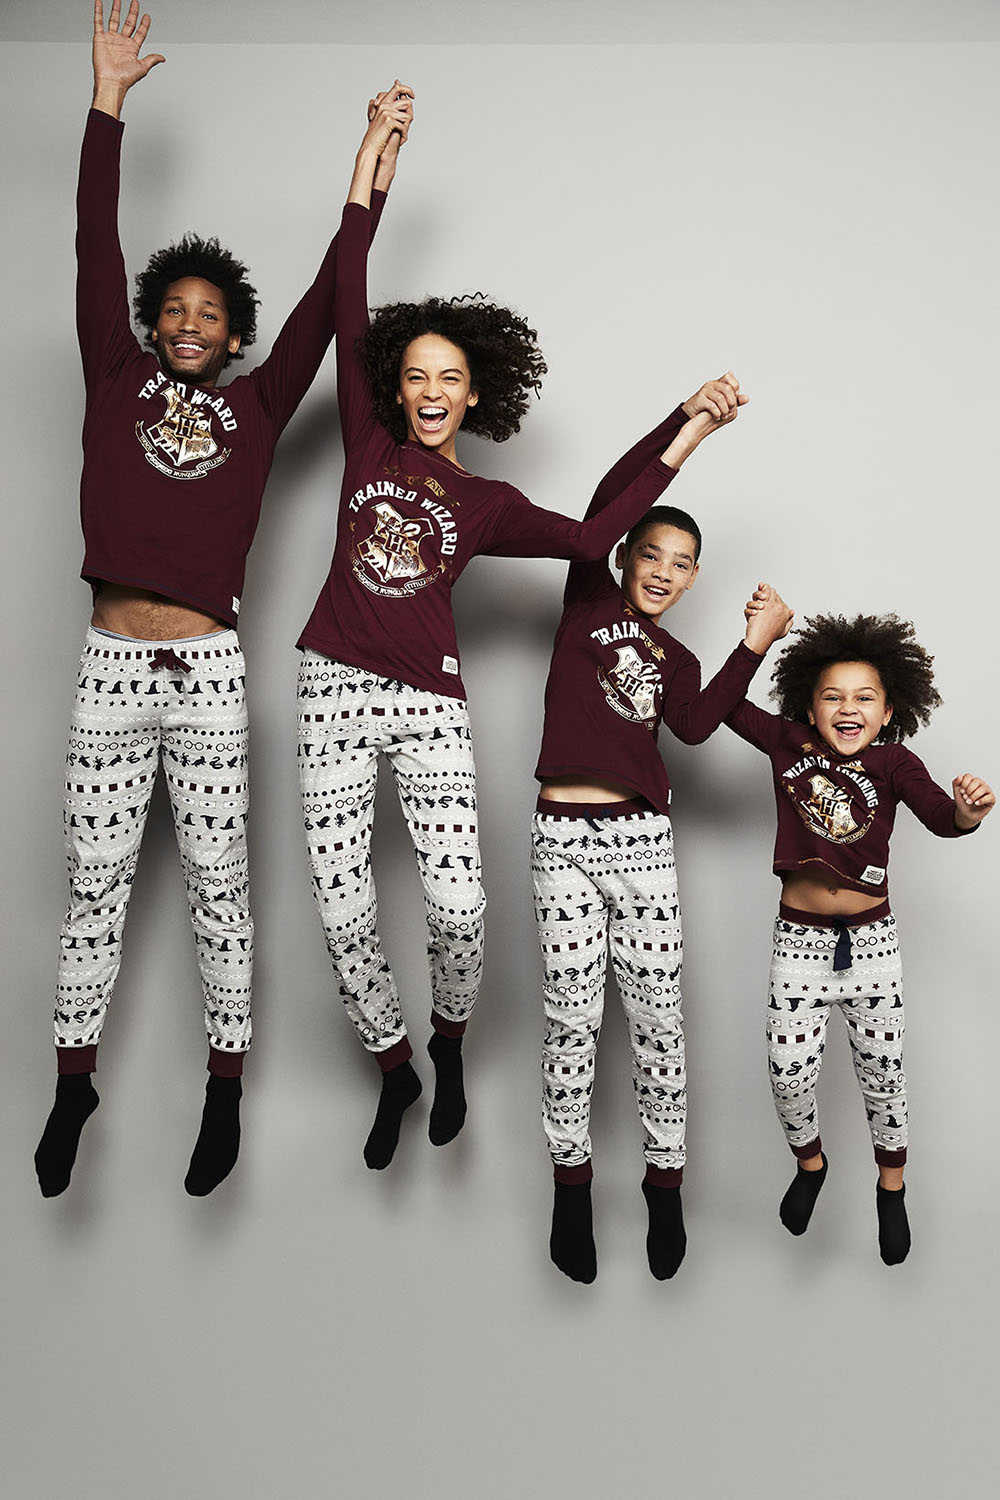 You can get matching Harry Potter pyjamas for the whole family at Primark